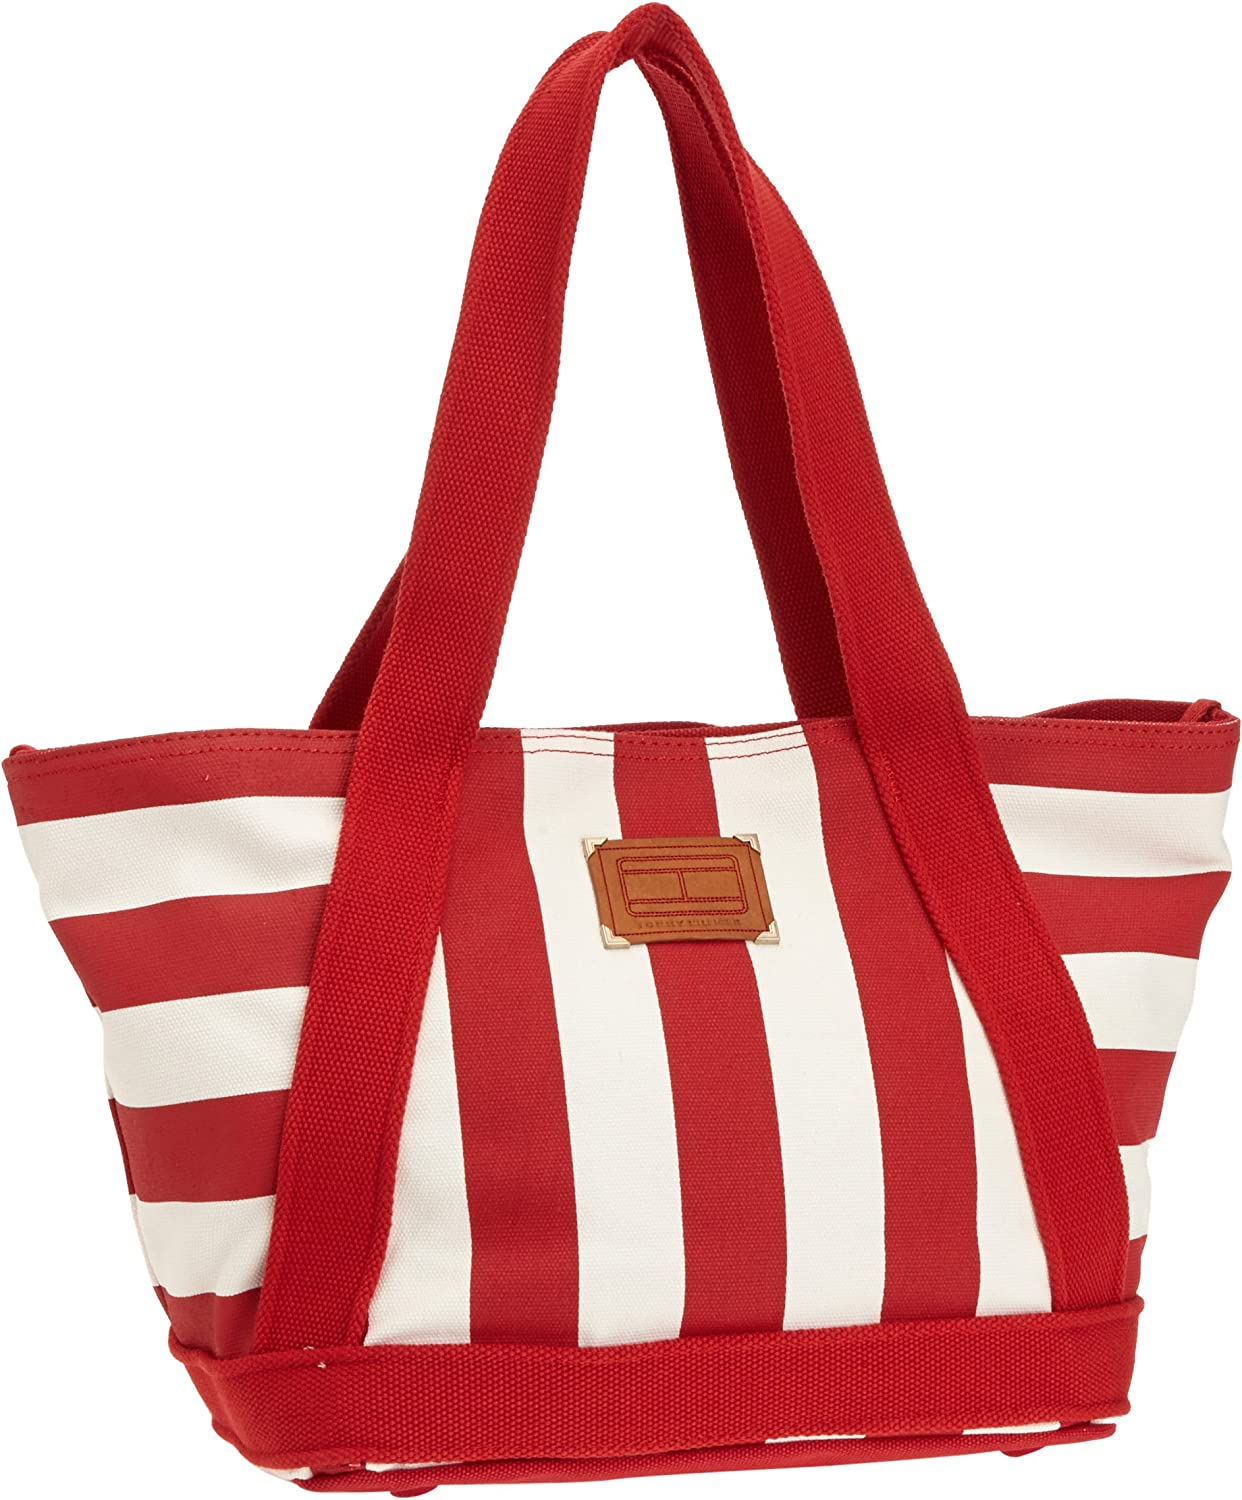 Tommy Hilfiger Handbags All stores are sold All items in the store